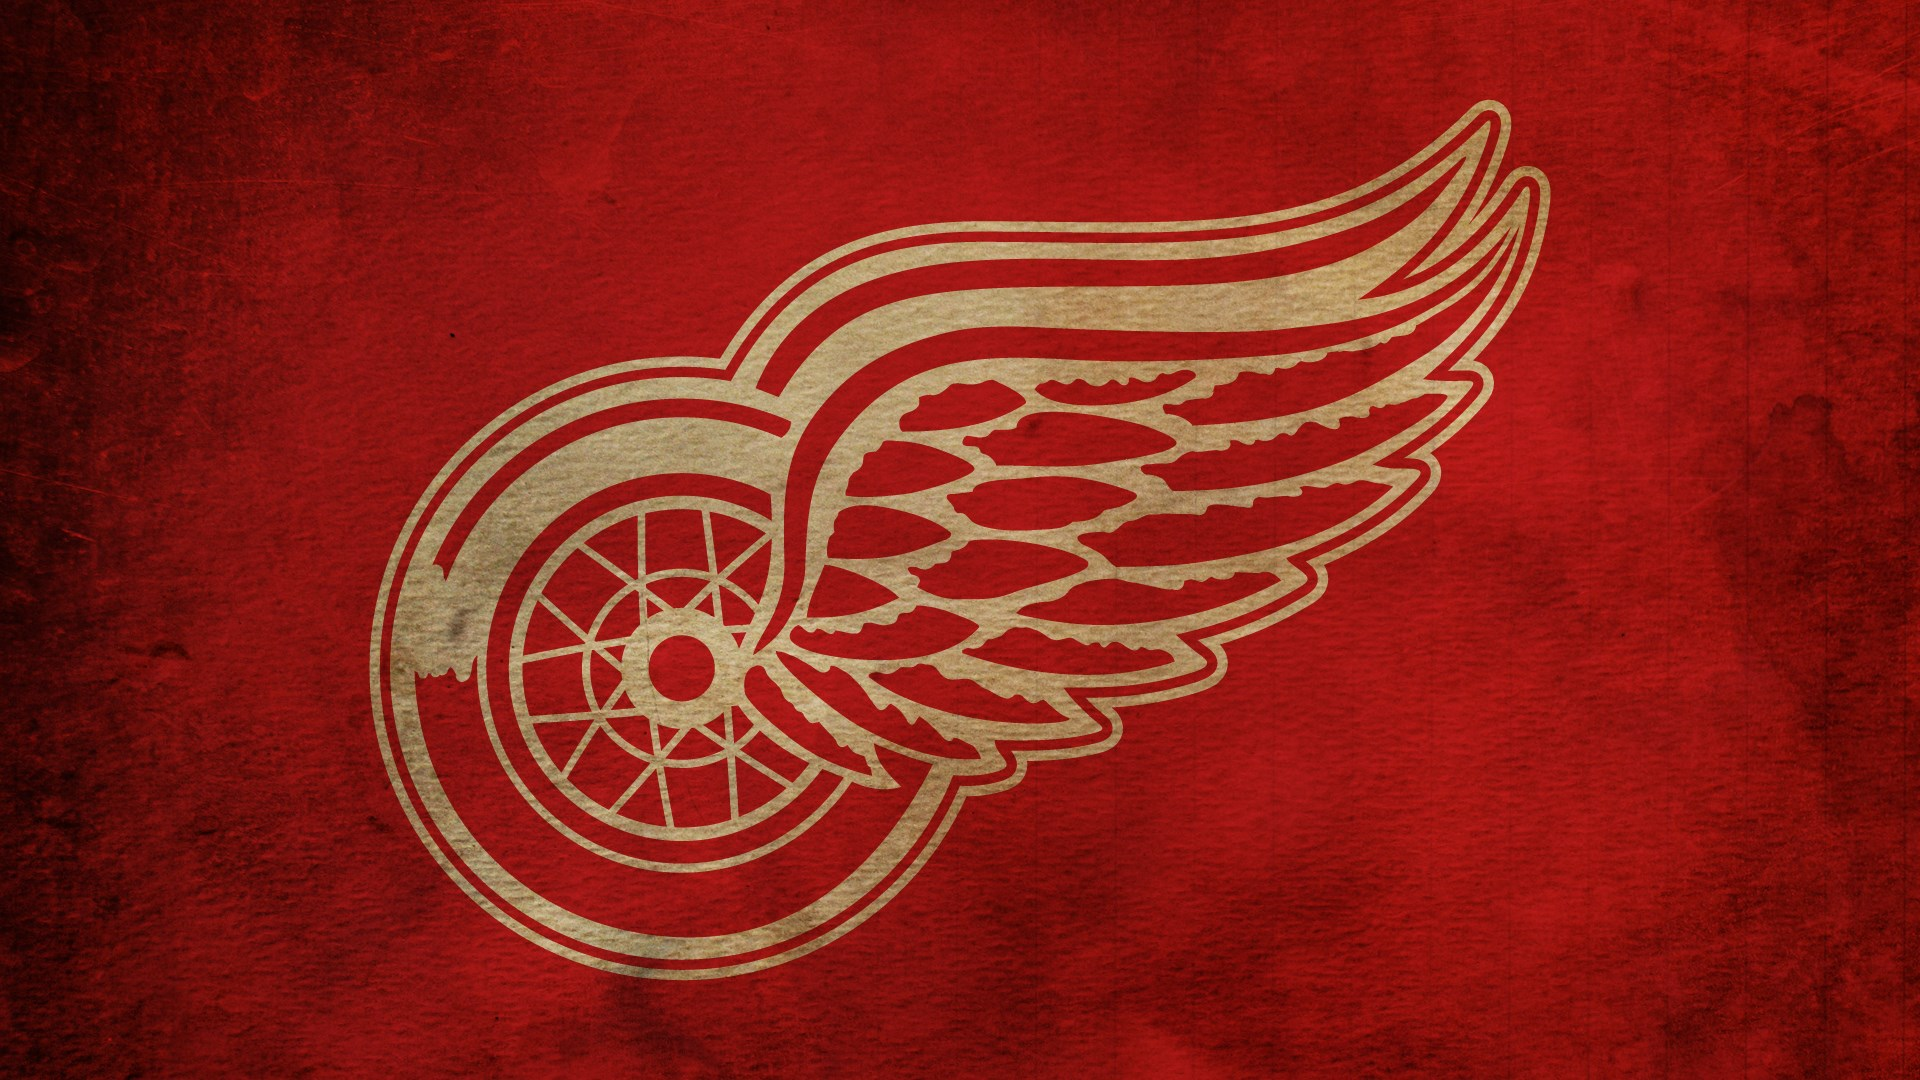 detroit-red-wings-Full-HD-Pictures-wallpaper-wpc5804103